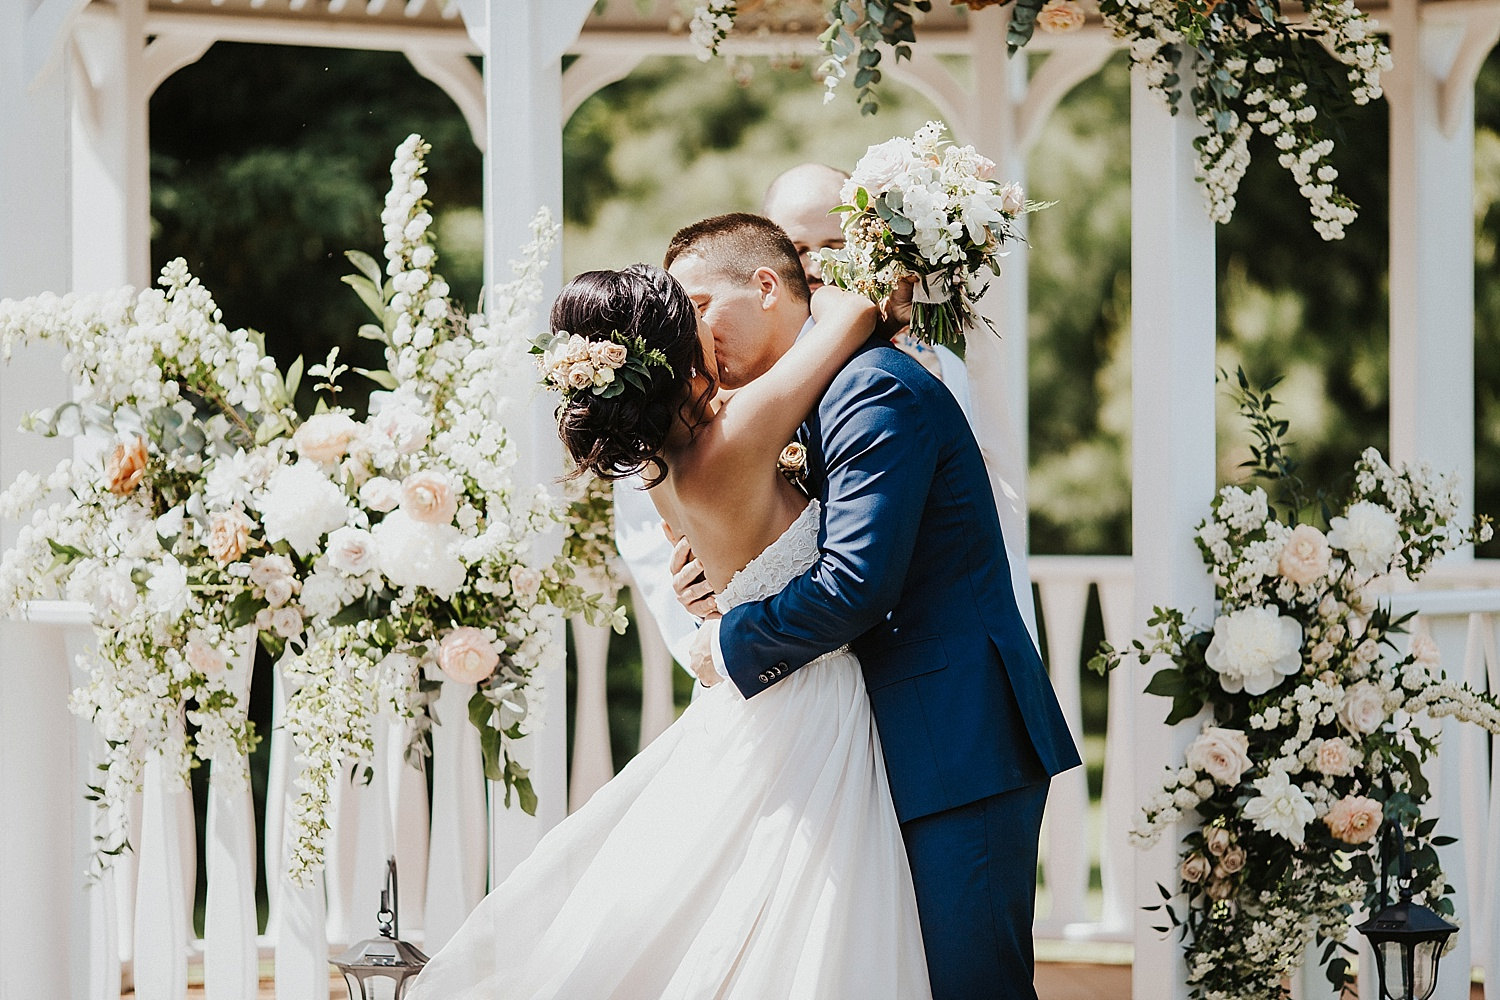 Wedding ceremony, bride and groom kissing